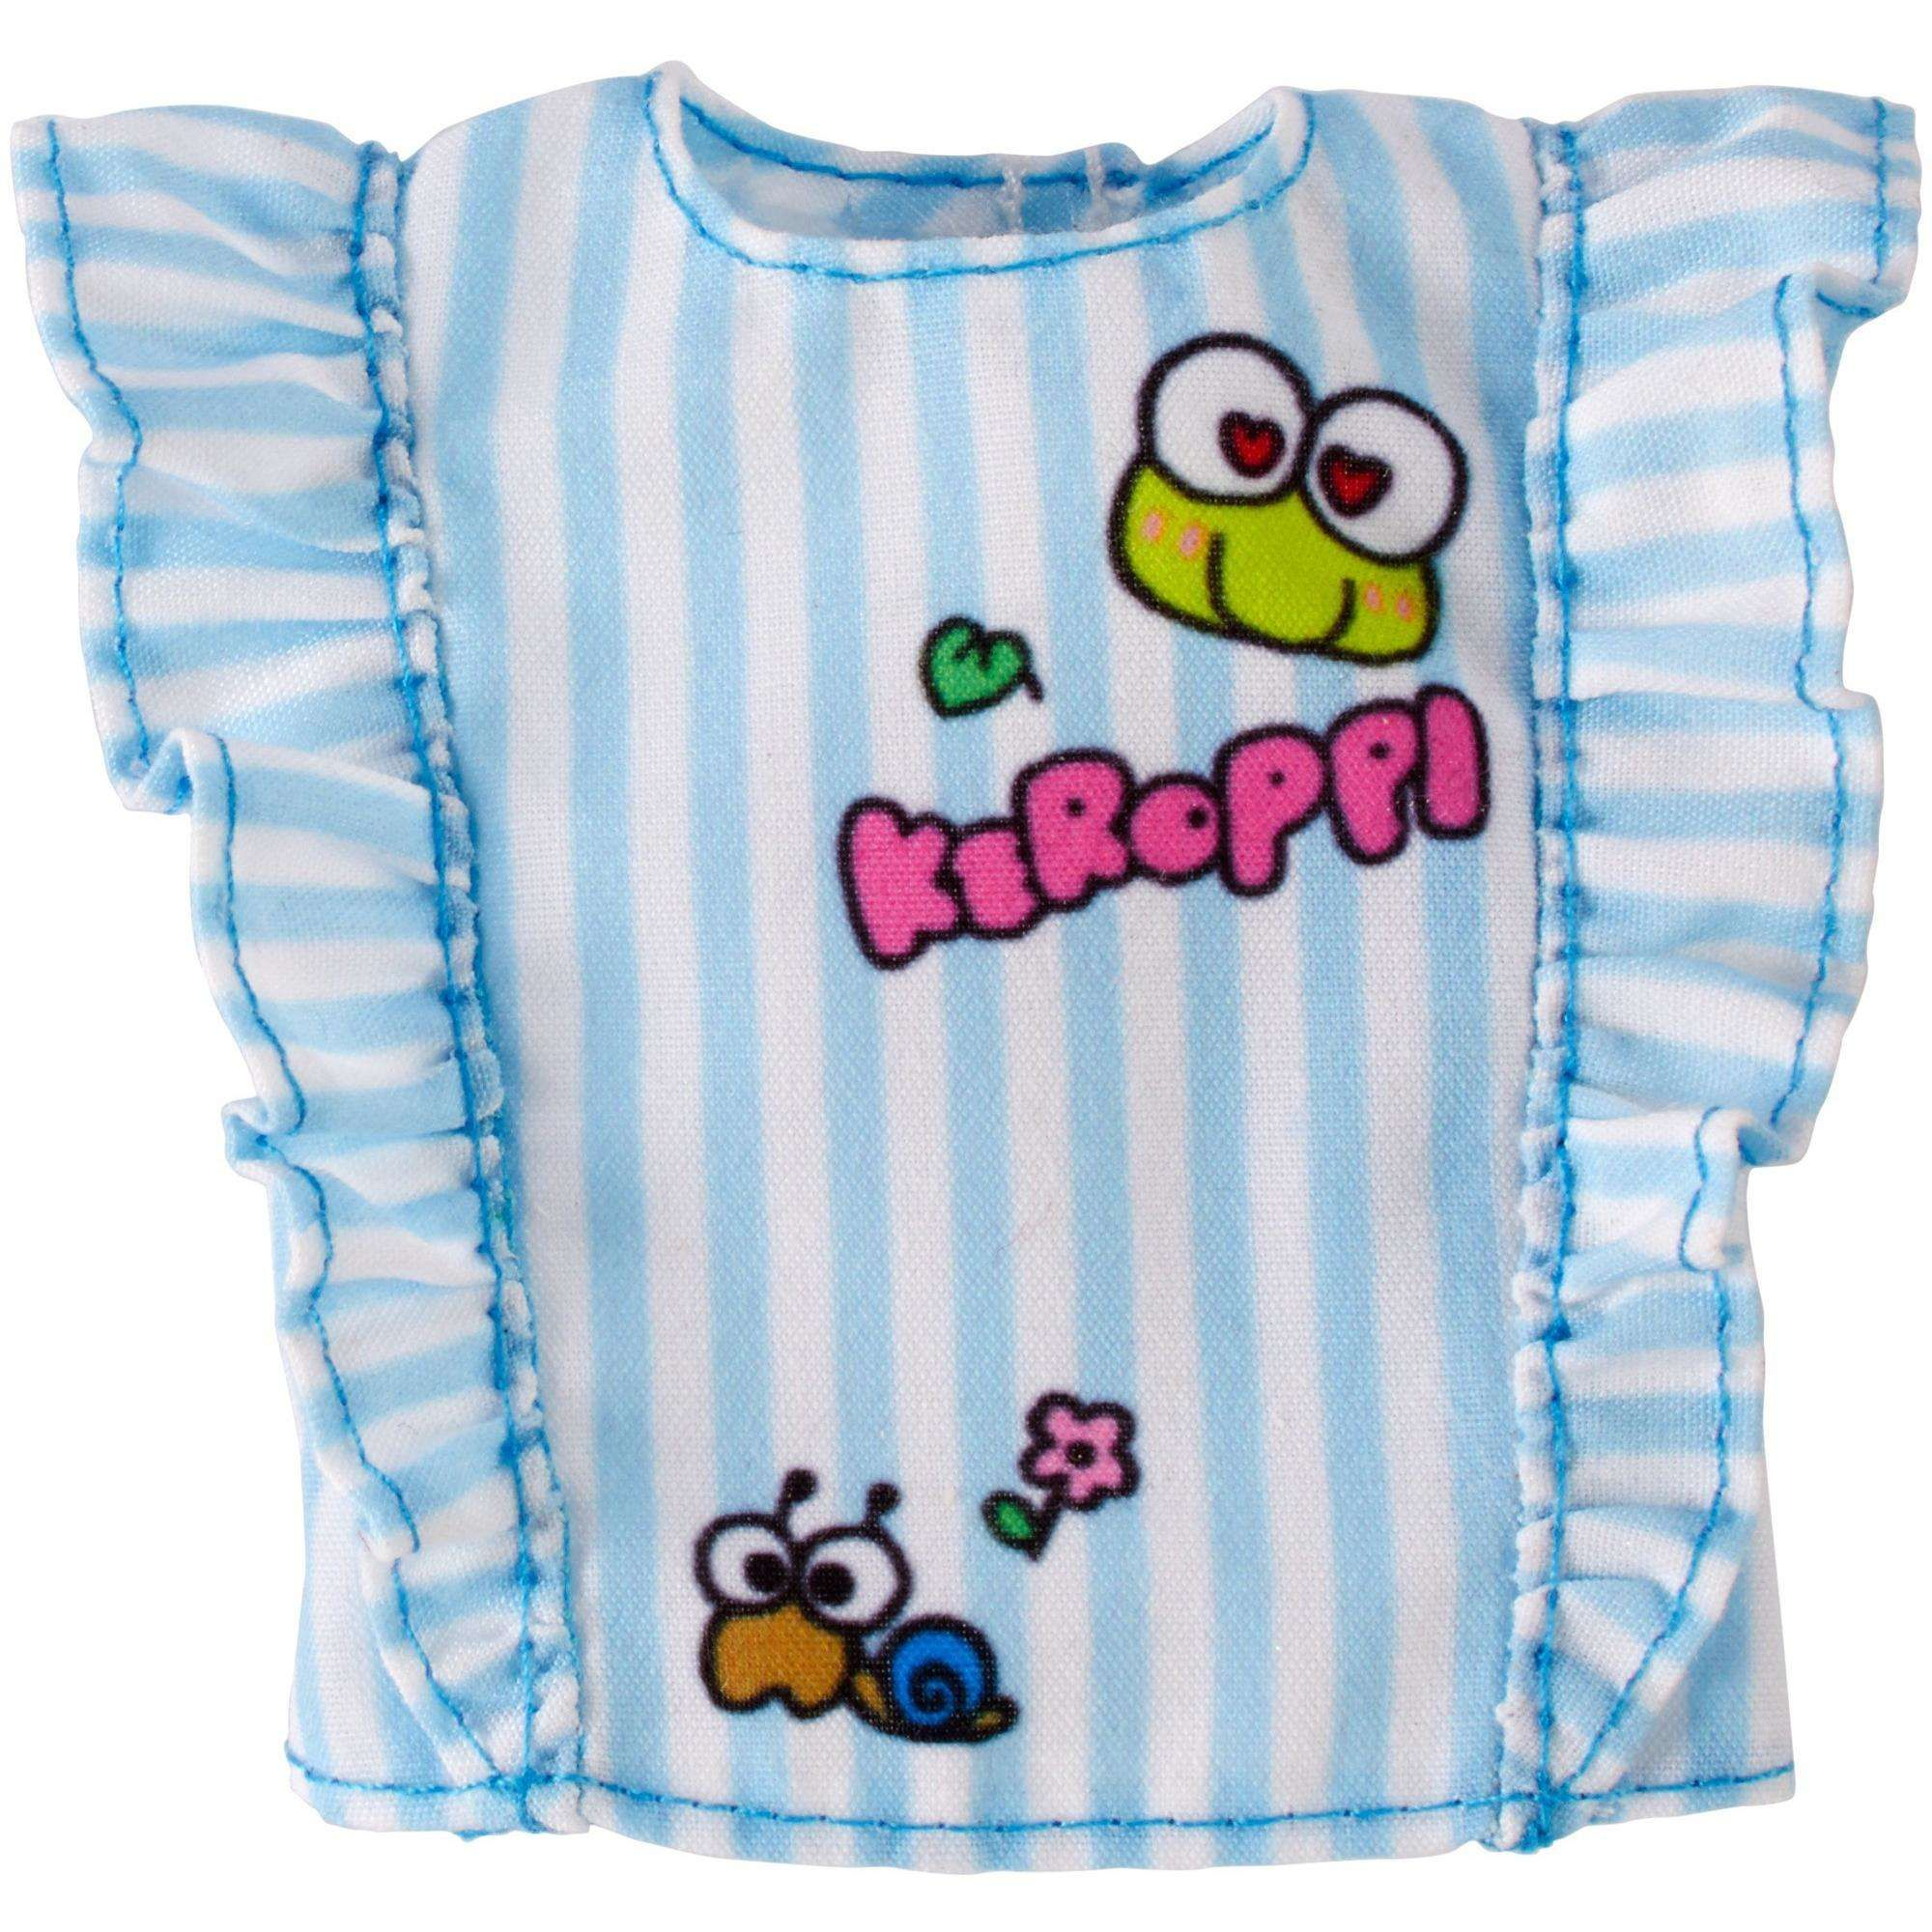 new product a4685 71a94 Barbie Hello Kitty Fashion Pack - Blue Stripe Ruffle Top ...